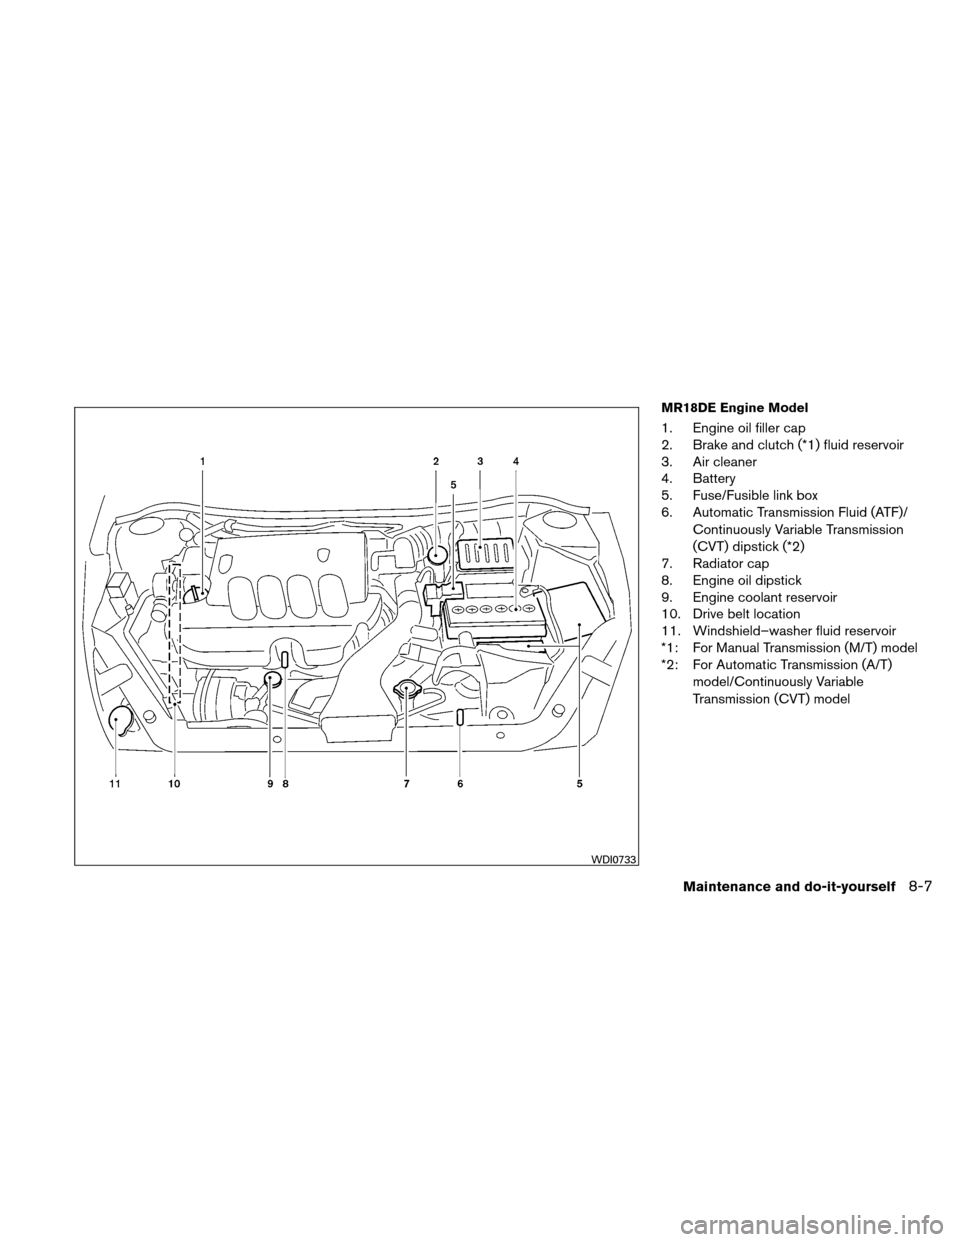 NISSAN VERSA HATCHBACK 2010 1.G Owners Manual, Page 270